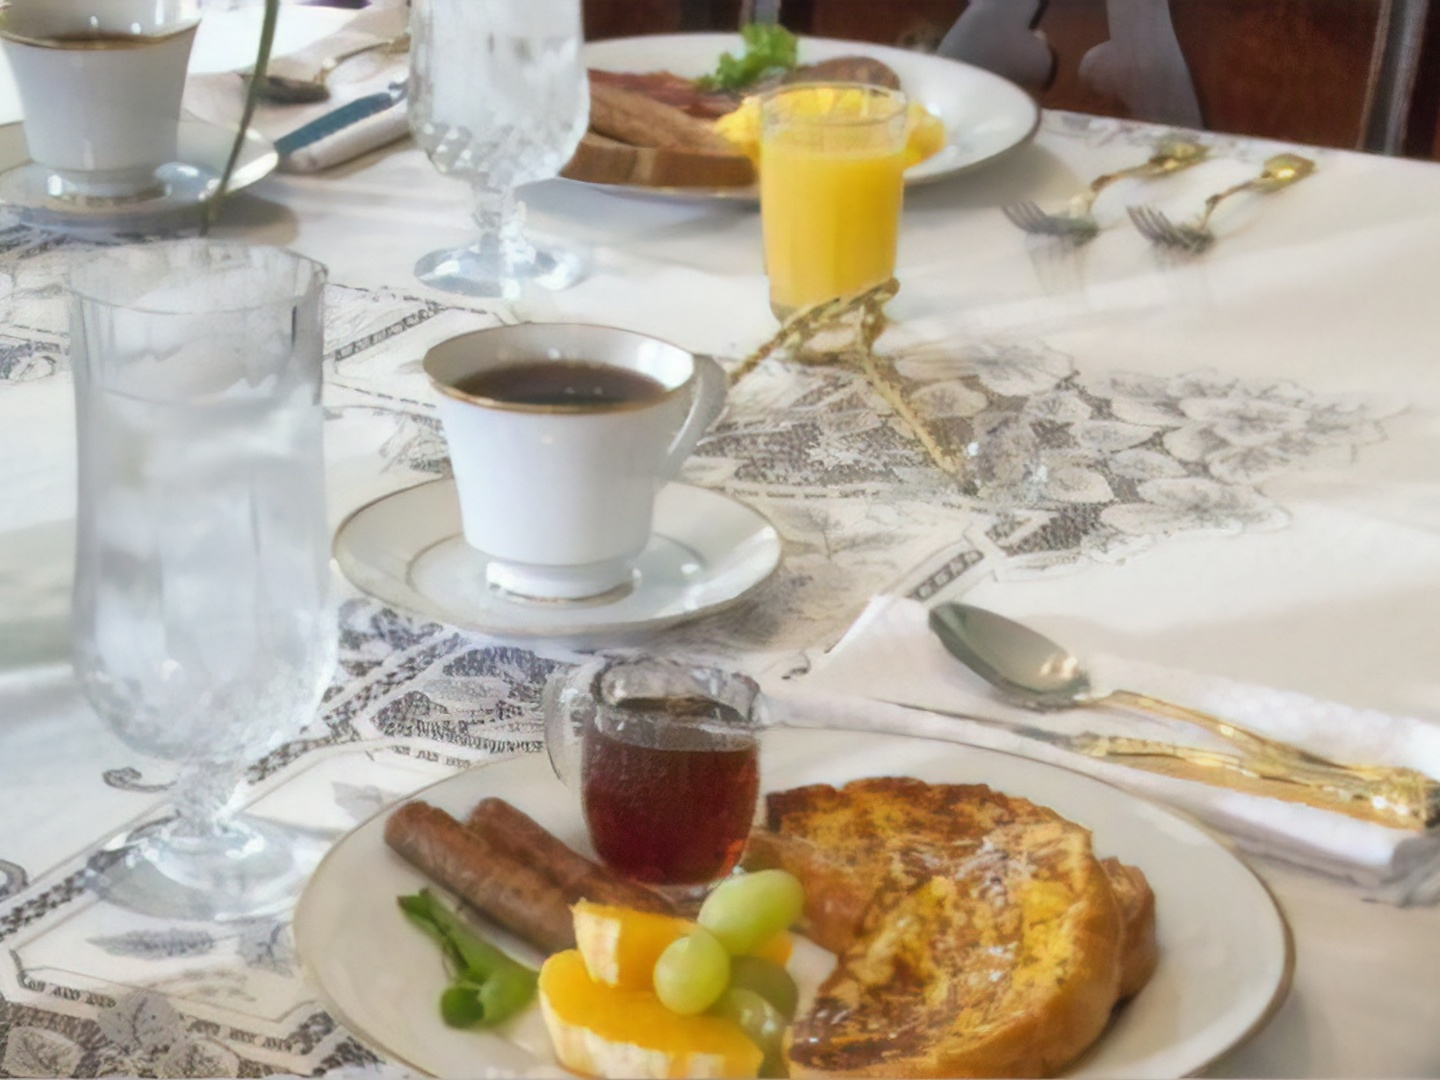 A plate of food and a cup of coffee on a table at Gateway Bed and Breakfast.